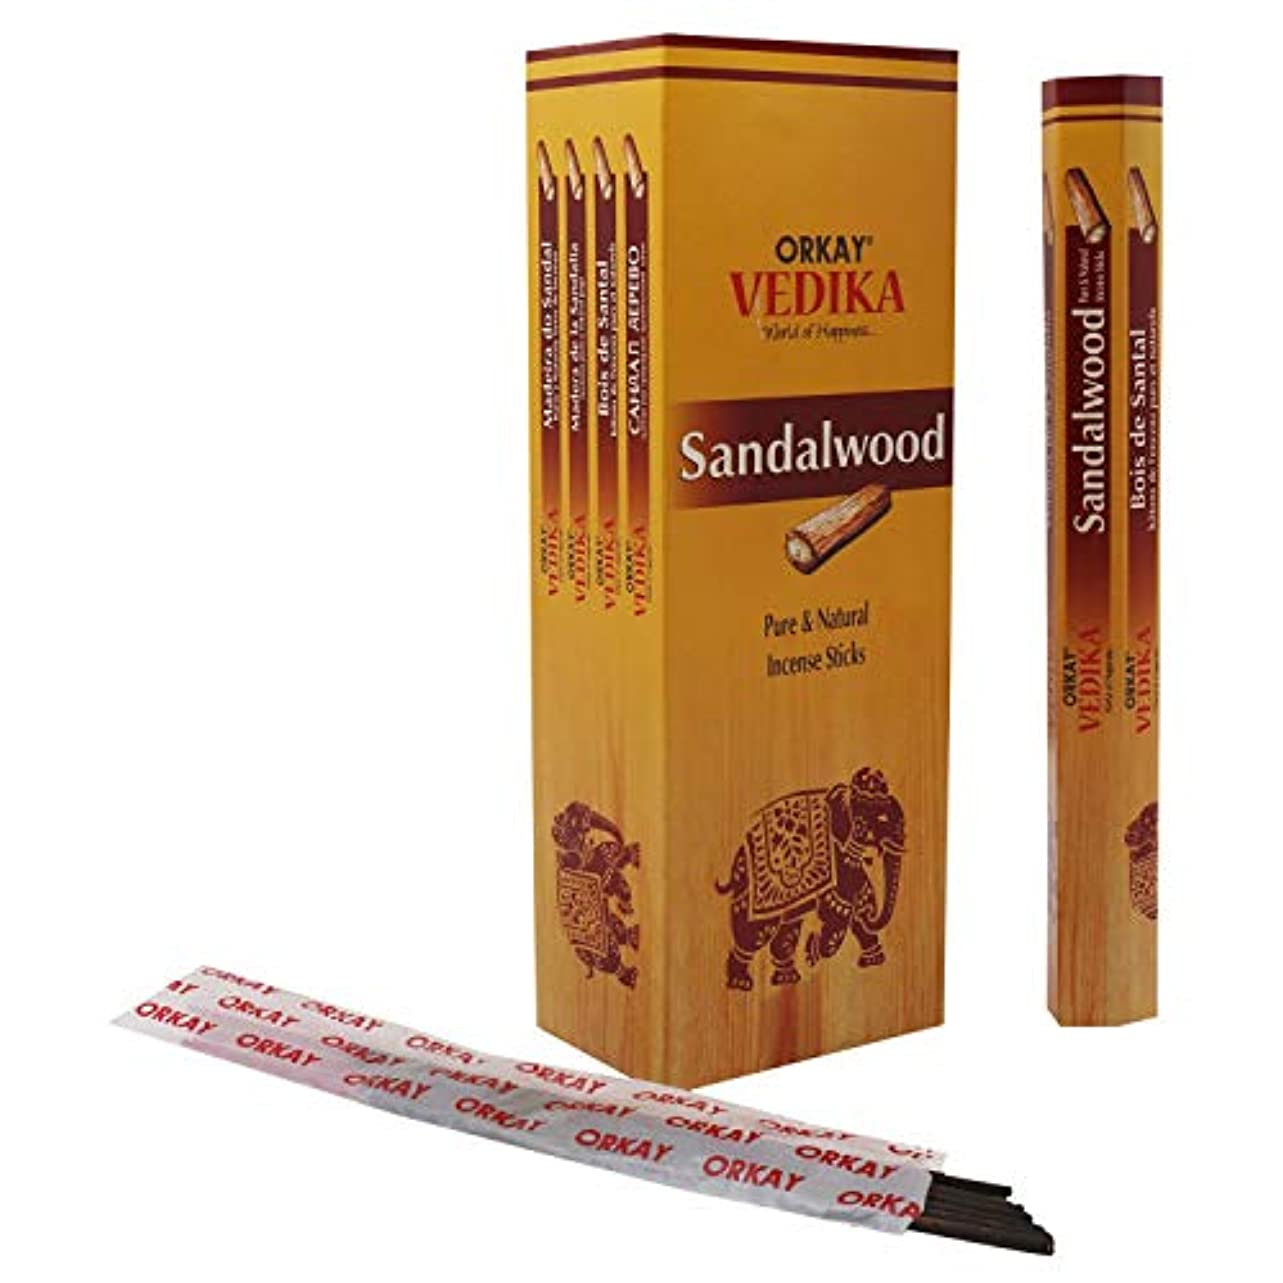 いつでも天の組み合わせるOrkay Vedika Sandalwood 6 pkt of 20 gm Each (Contains 96 Incense Sticks/Natural Agarbatti)